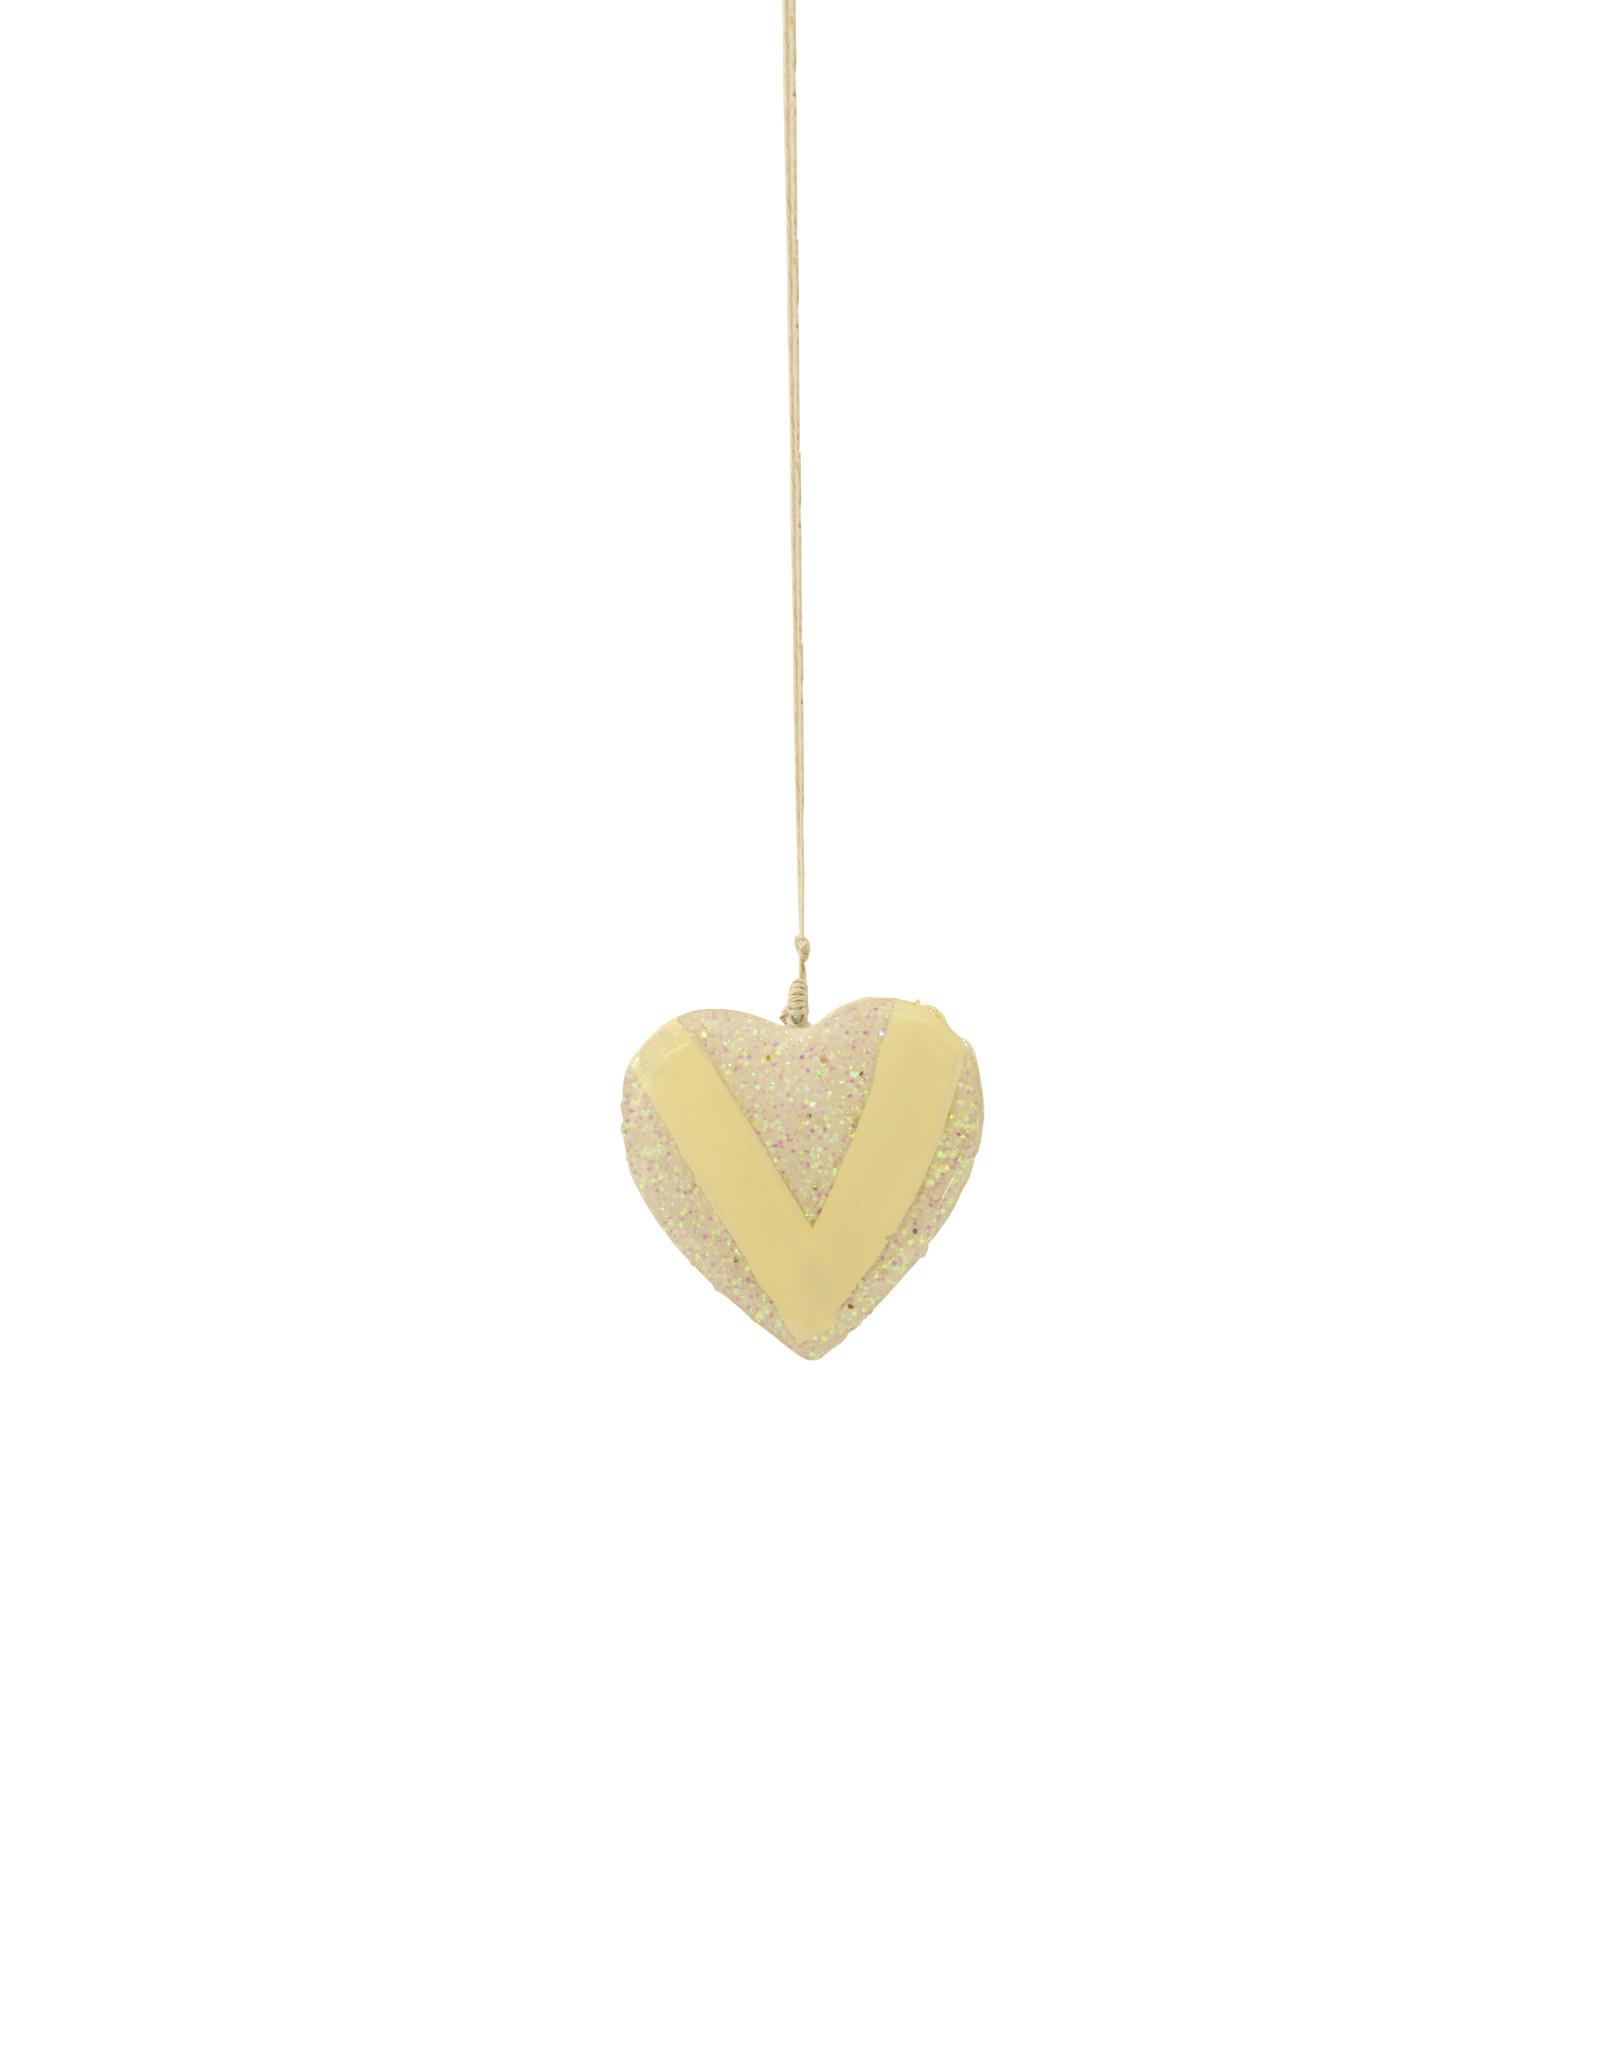 Entouquet White Glitter + Yellow Line Design Extra Small Heart on String